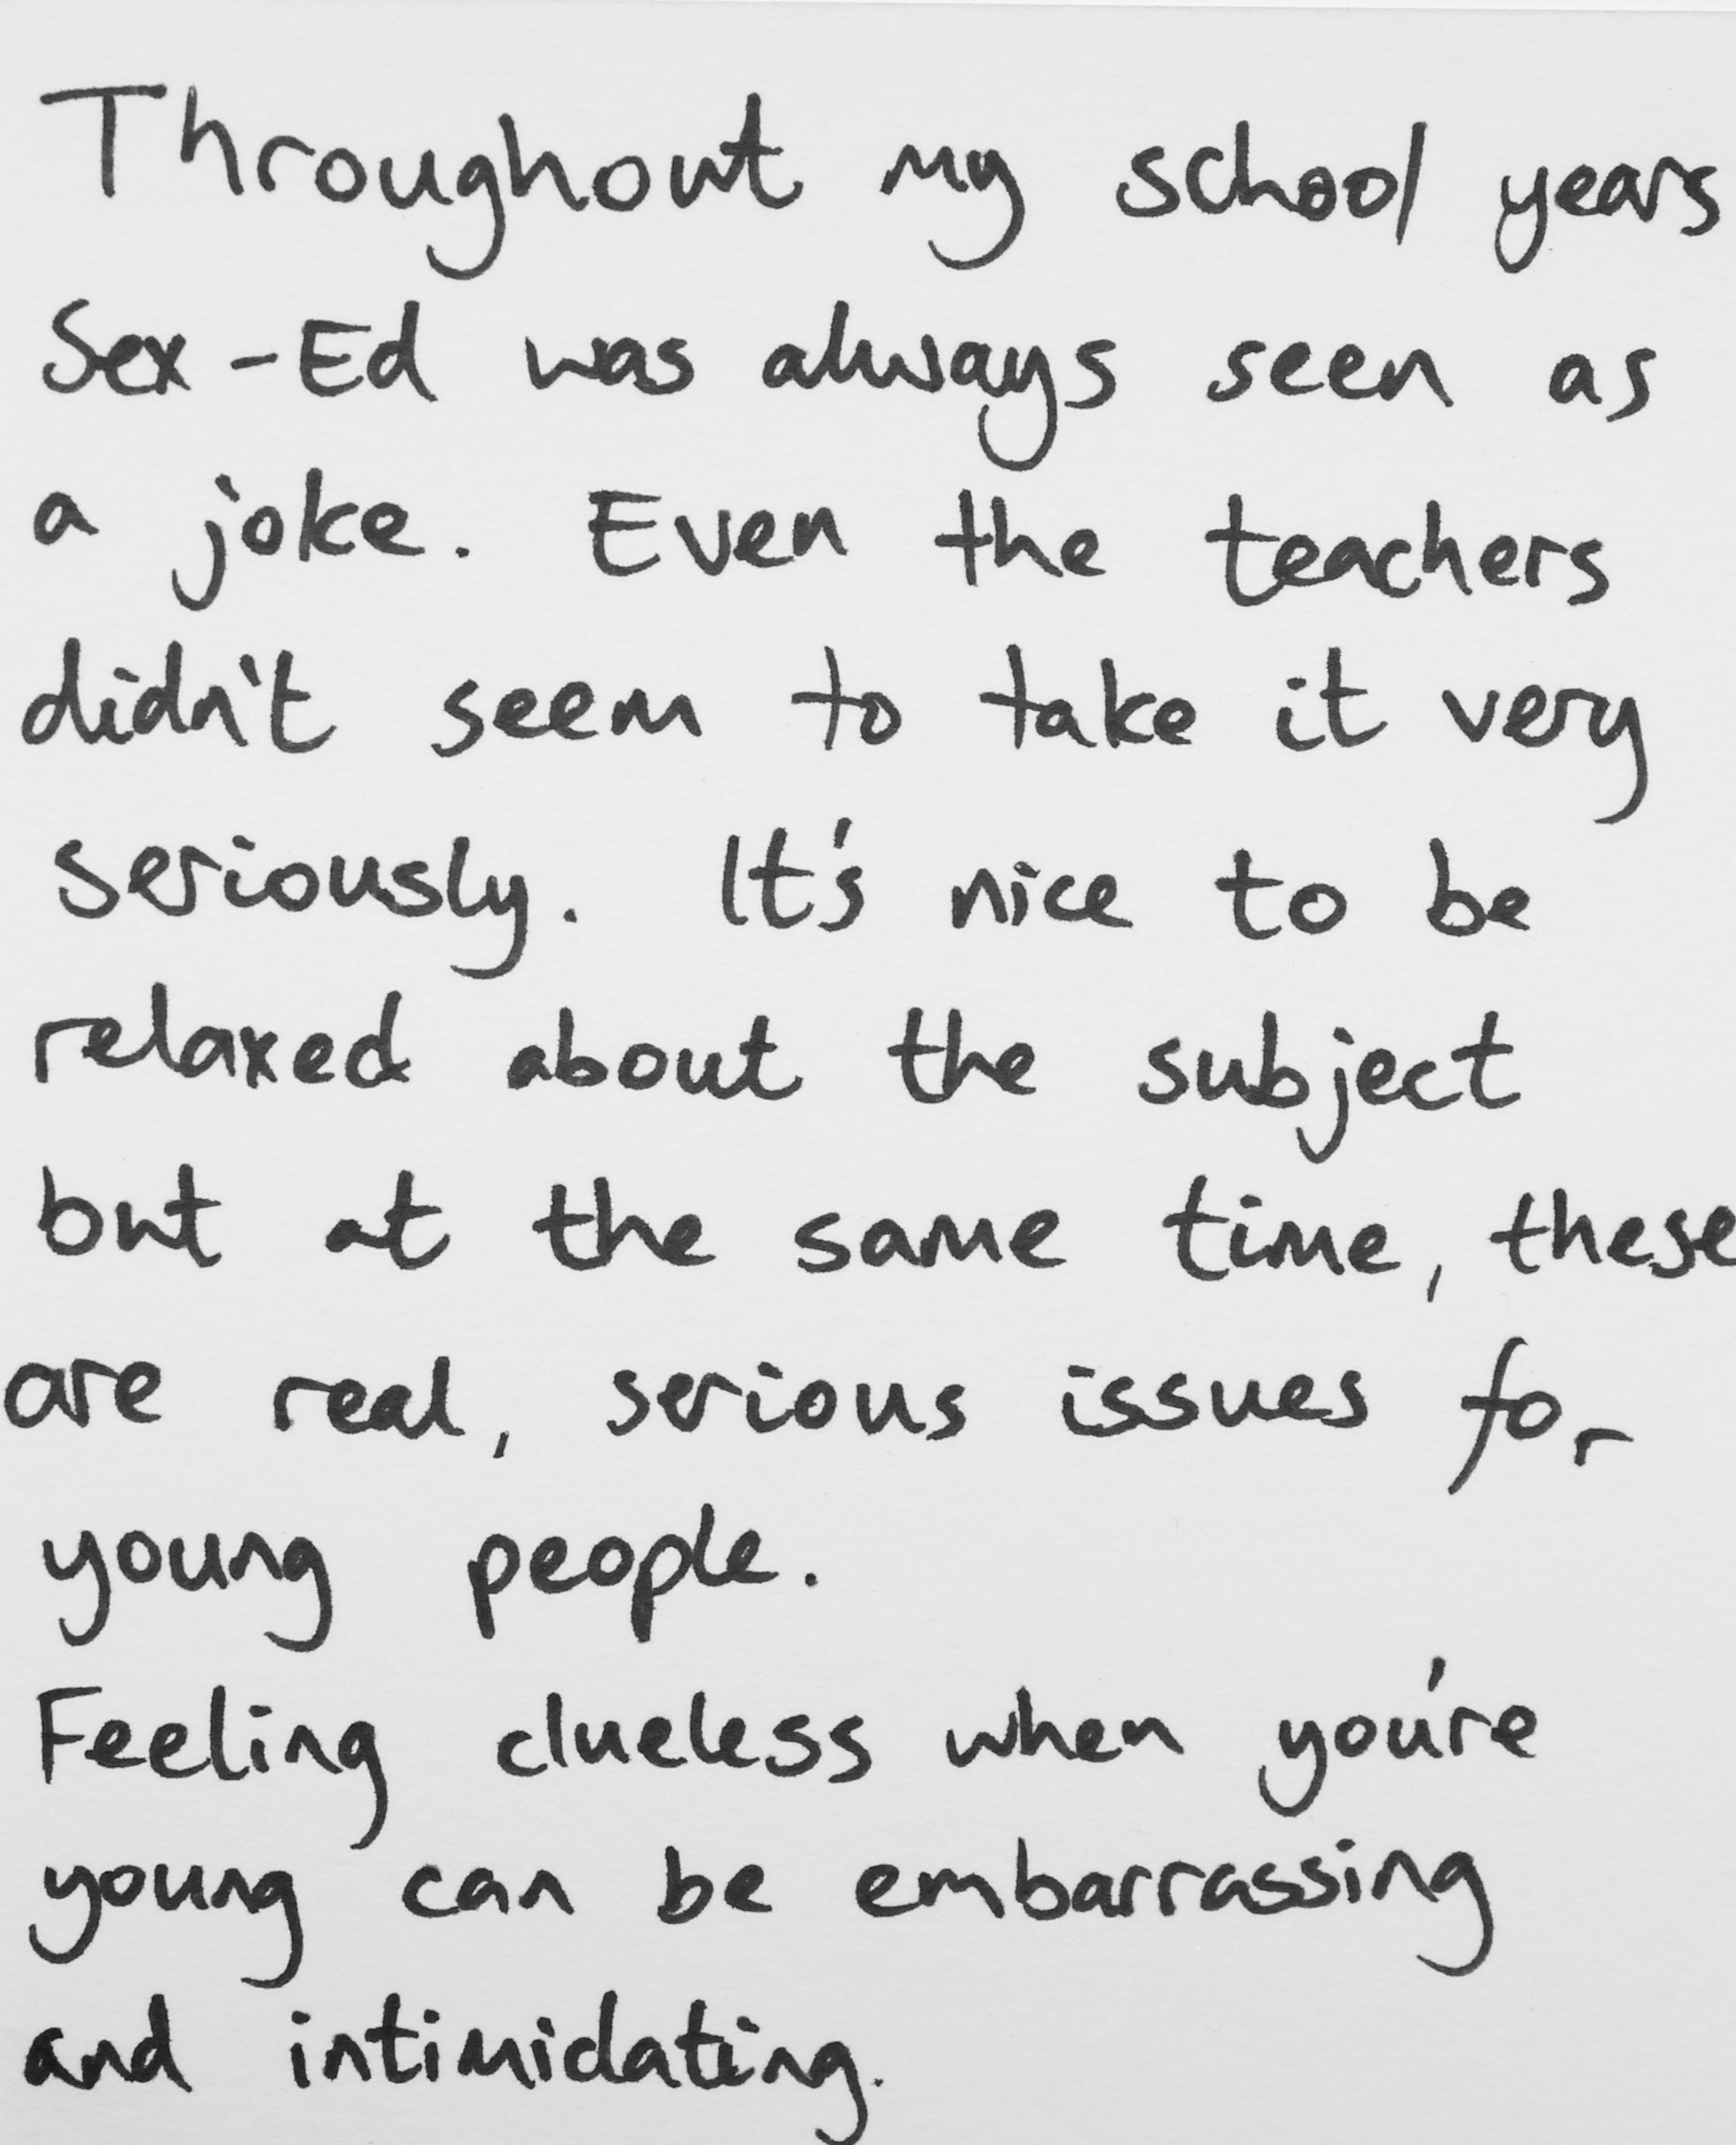 Throughout my school years sex-ed was always seen as a joke. Even the teachers didn't seem to take it very seriously. It's nice to be relaxed about the subject but at the same time, these are real, serious issues for young people. Feeling clueless when you're young can be embarrassing and intimidating. -Alex